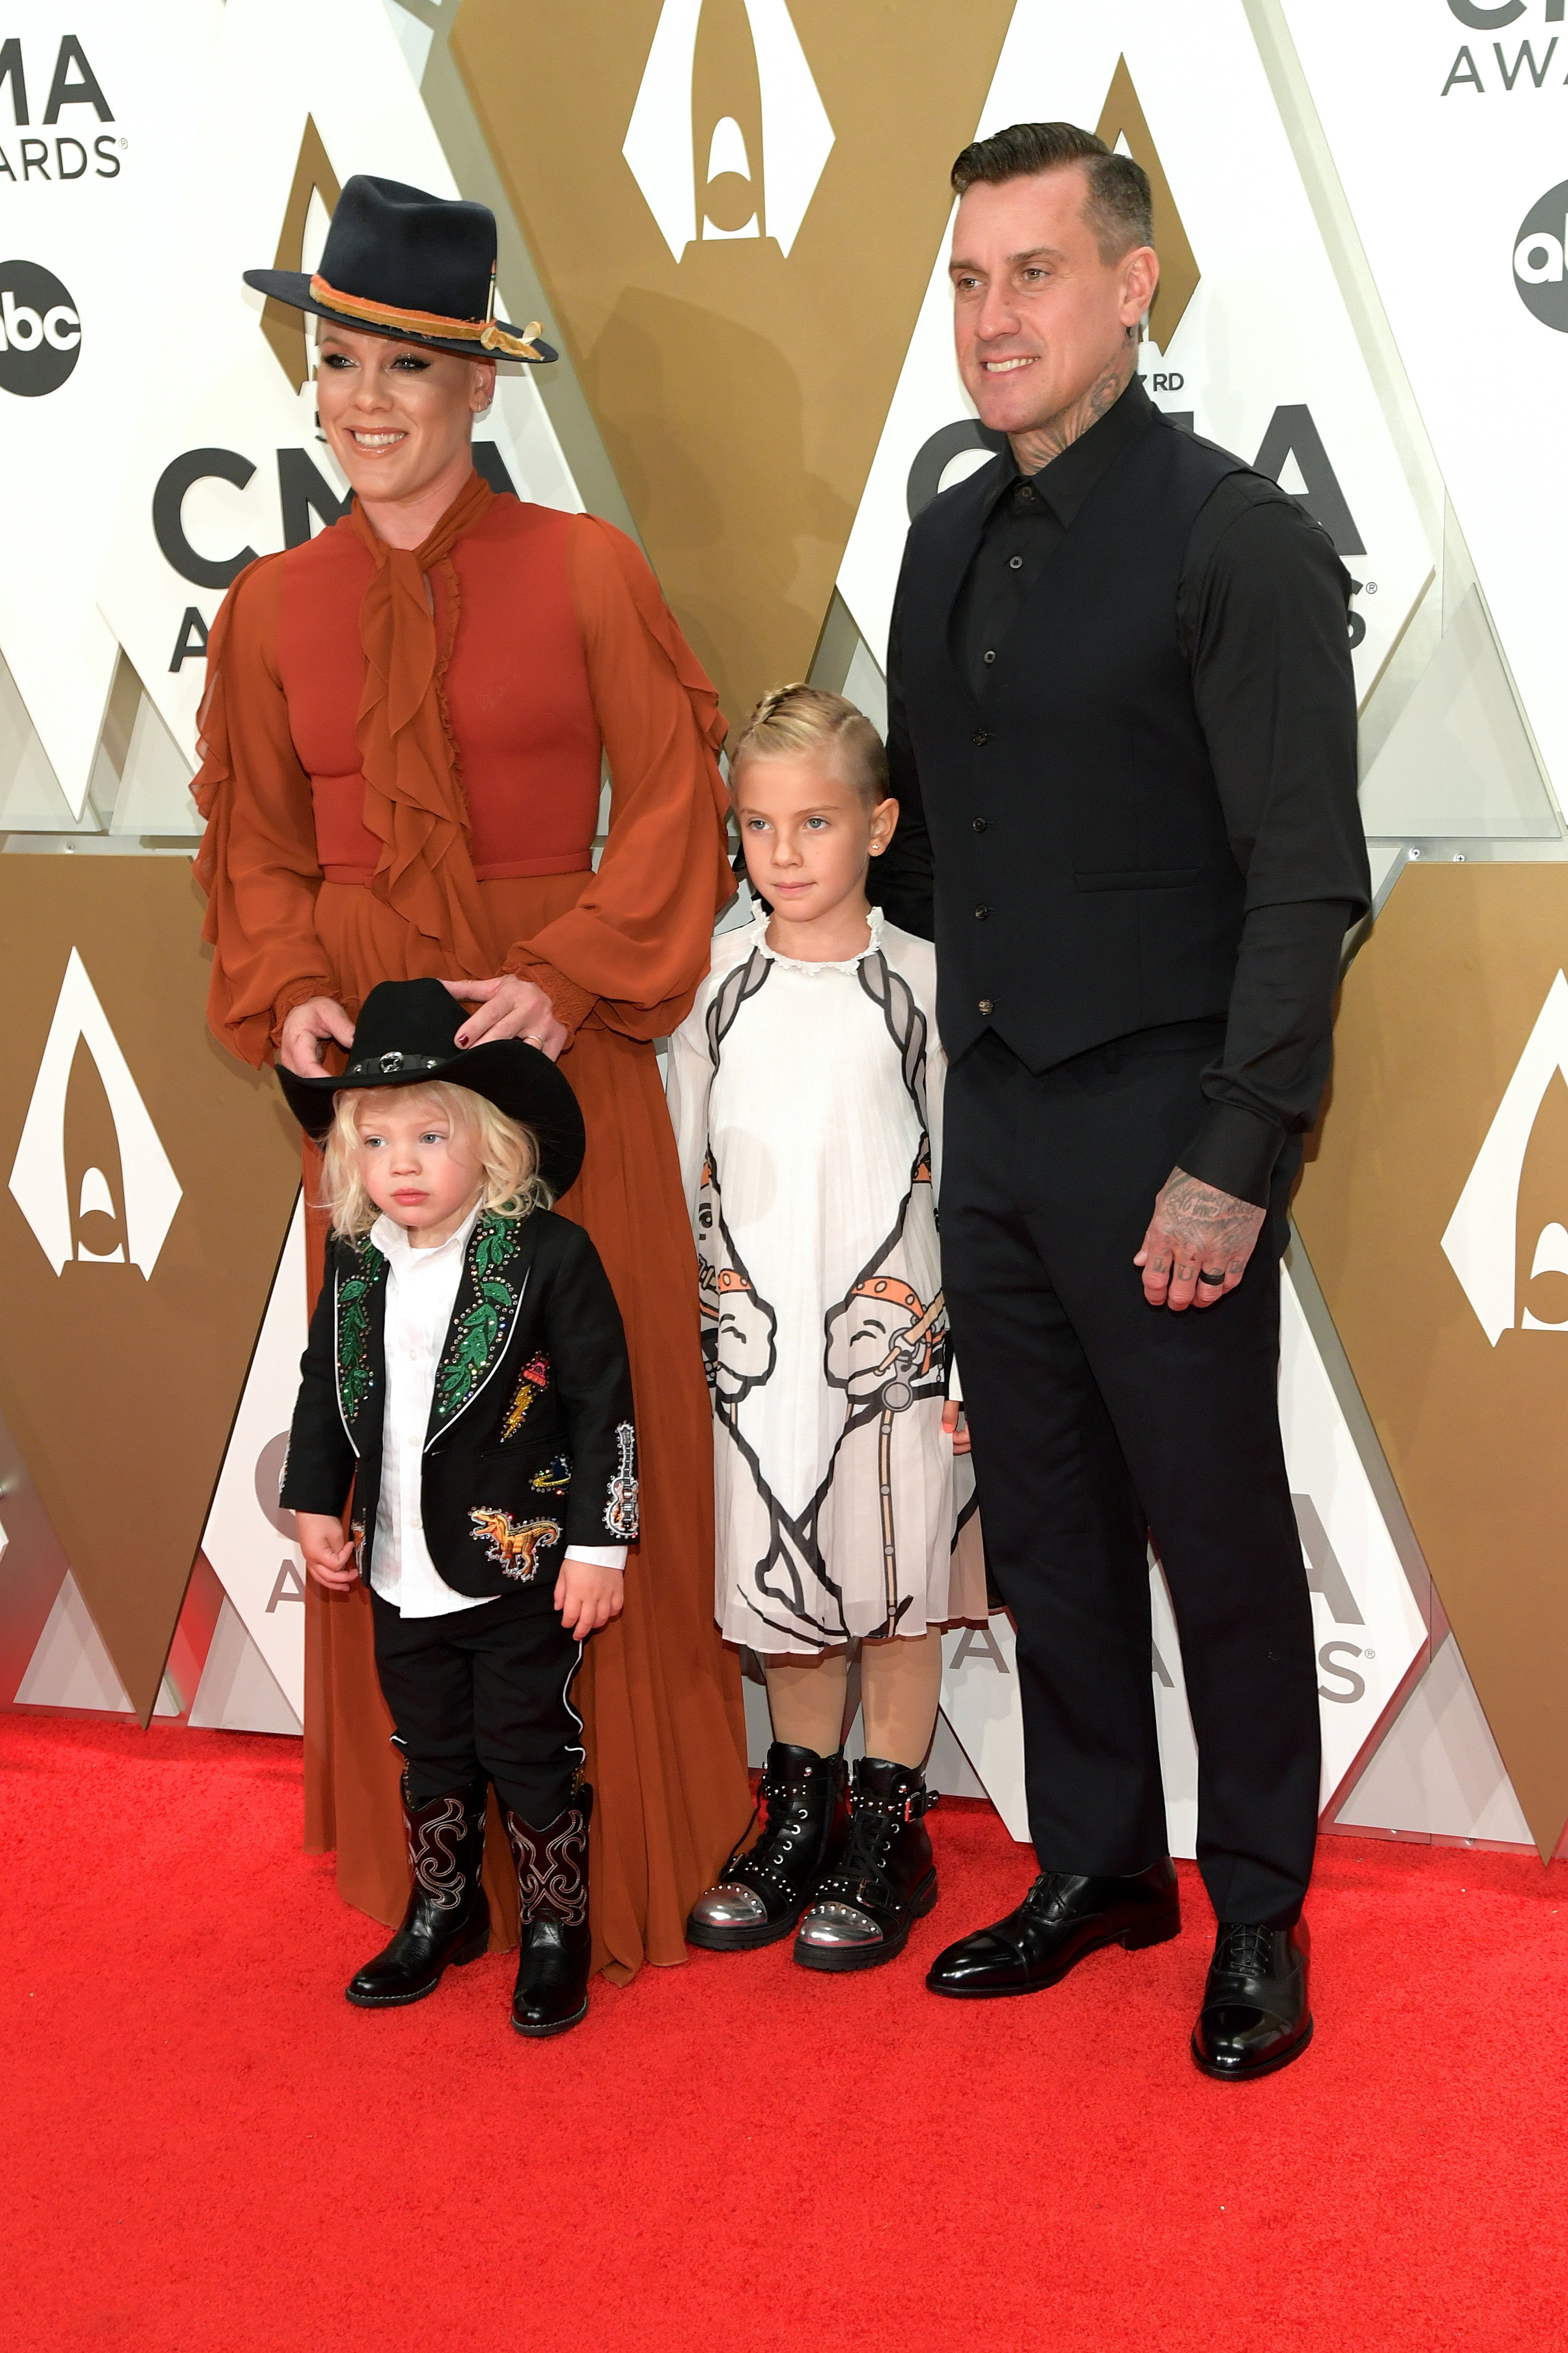 Jameson Hart, Willow Hart, P!nk and Carey Hart attend the 53rd annual CMA Awards at the Music City Center on November 13, 2019, in Nashville, Tennessee. | Photo: Getty Images.